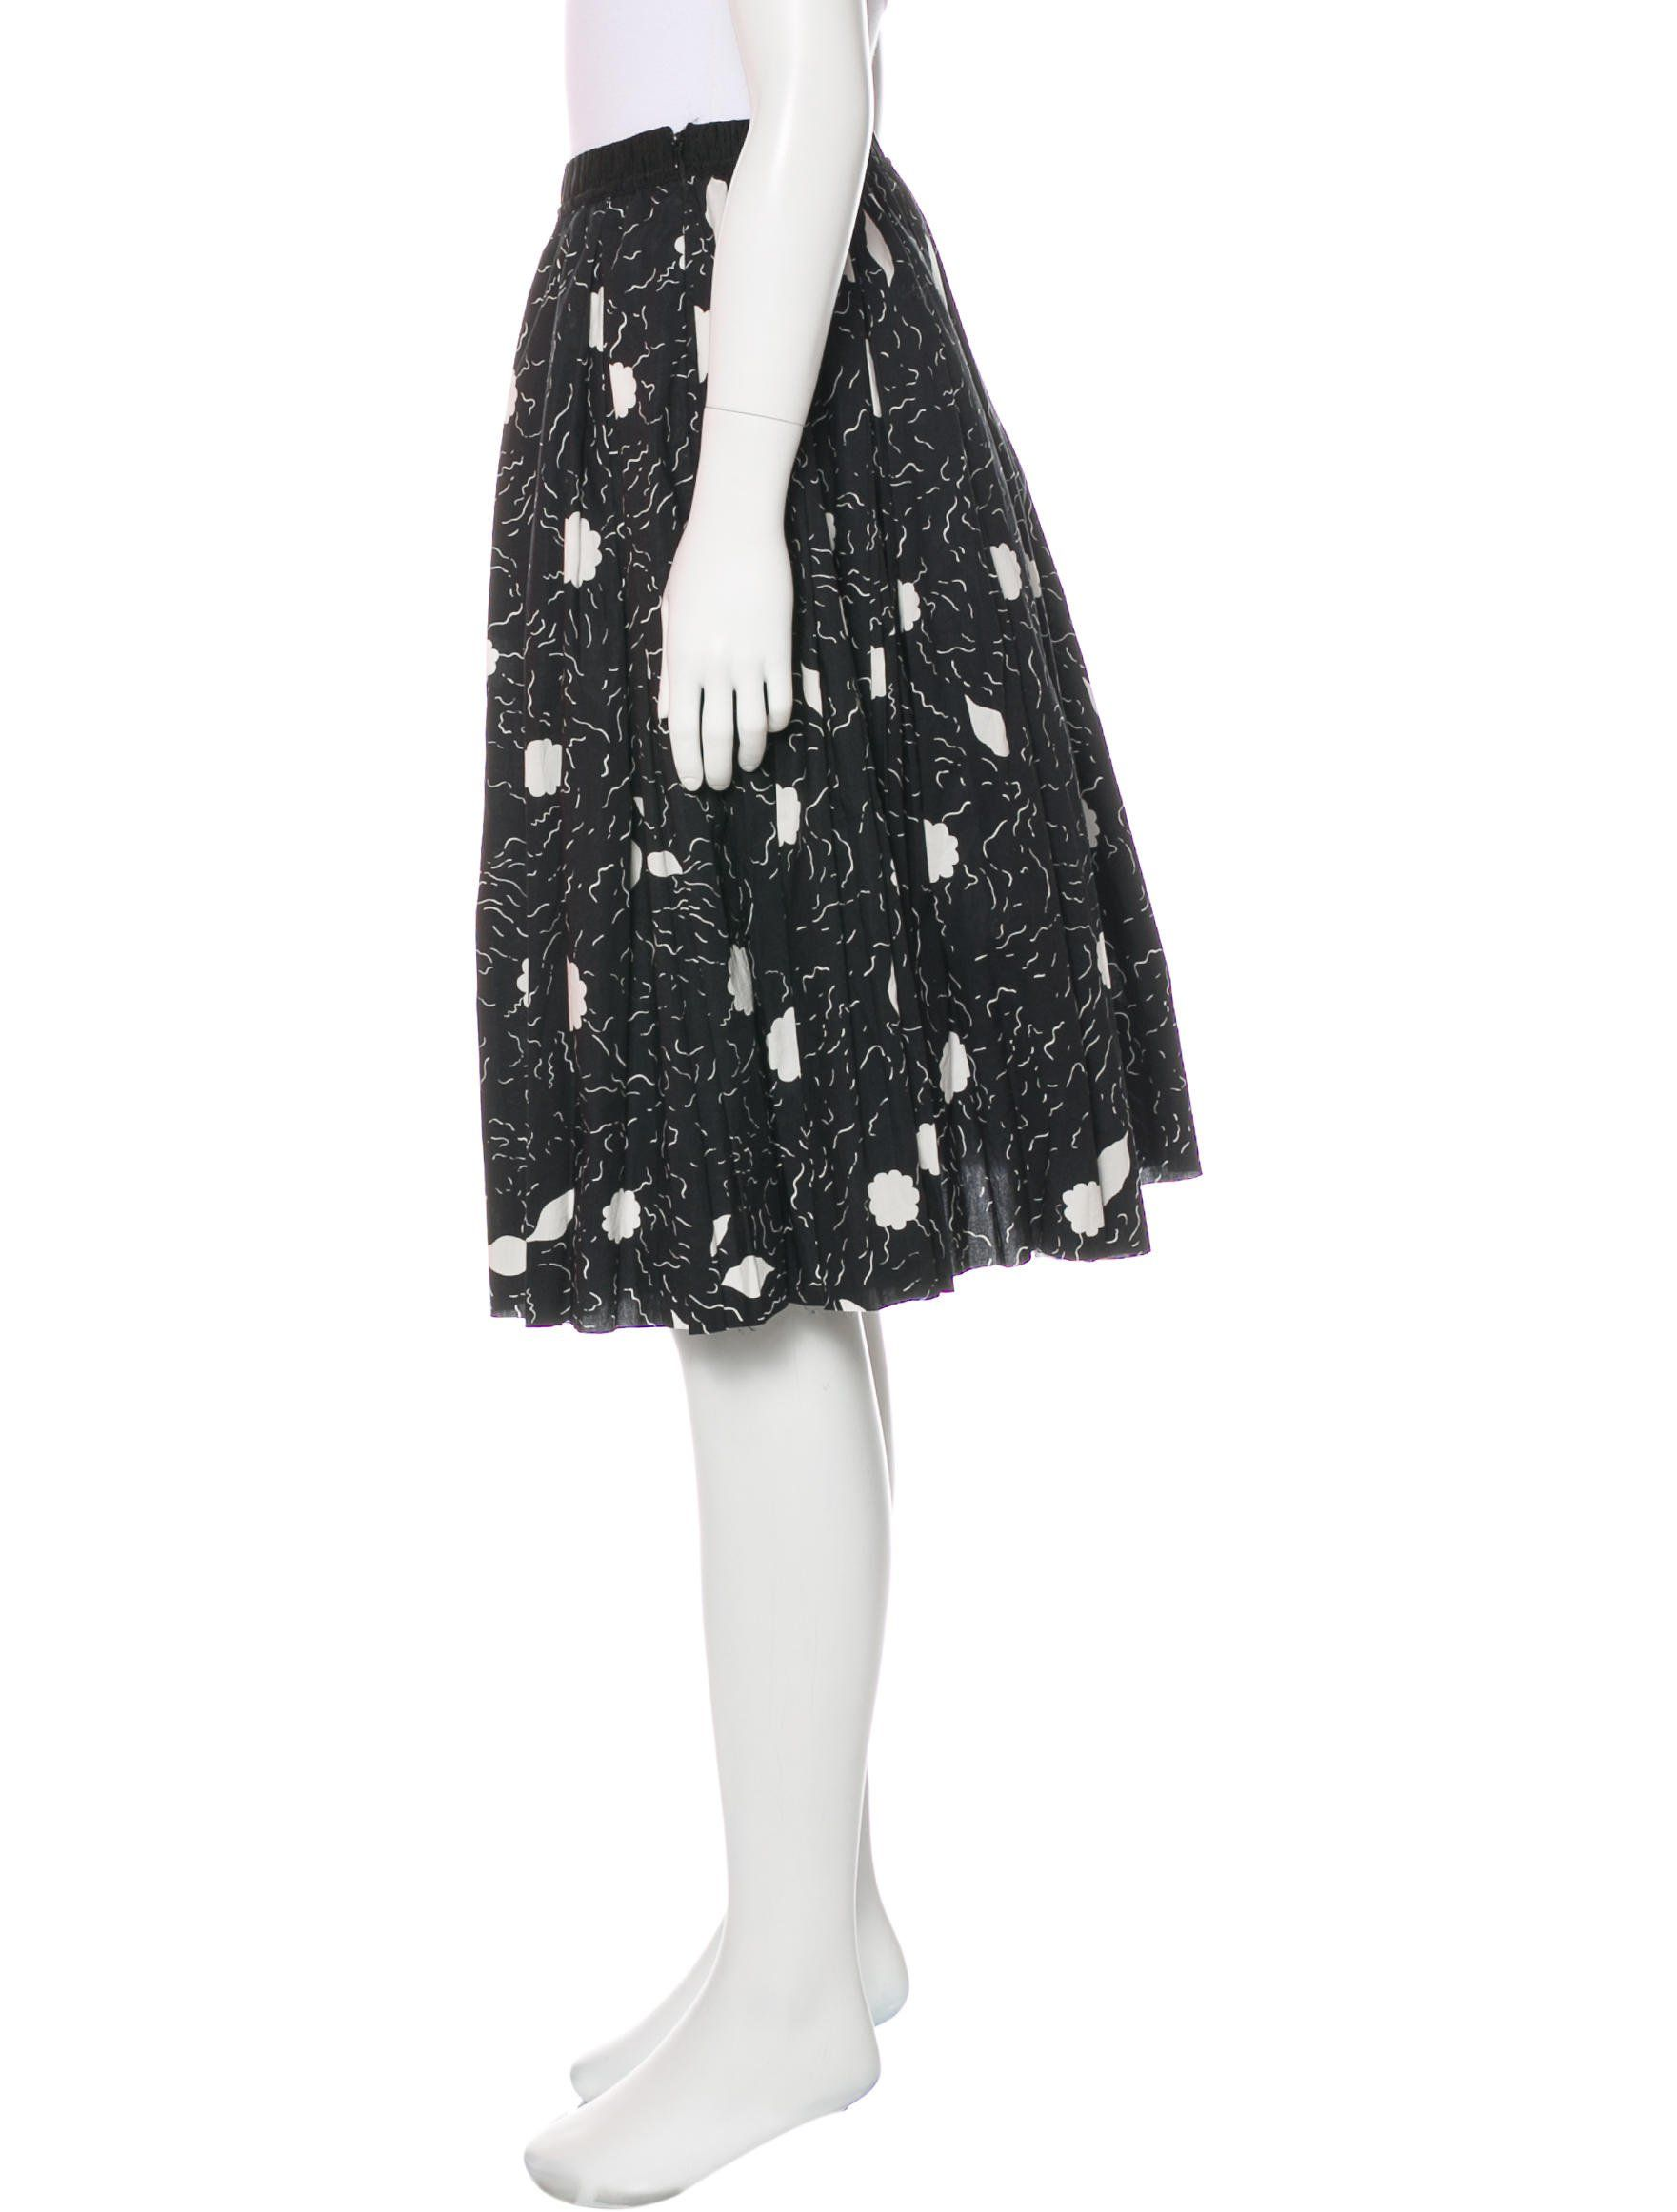 1682bc7b0 Black and white Marni knee-length skirt with abstract print throughout,  elasticized waistband, pleats, raw-edge hem and concealed zip closure at  side.